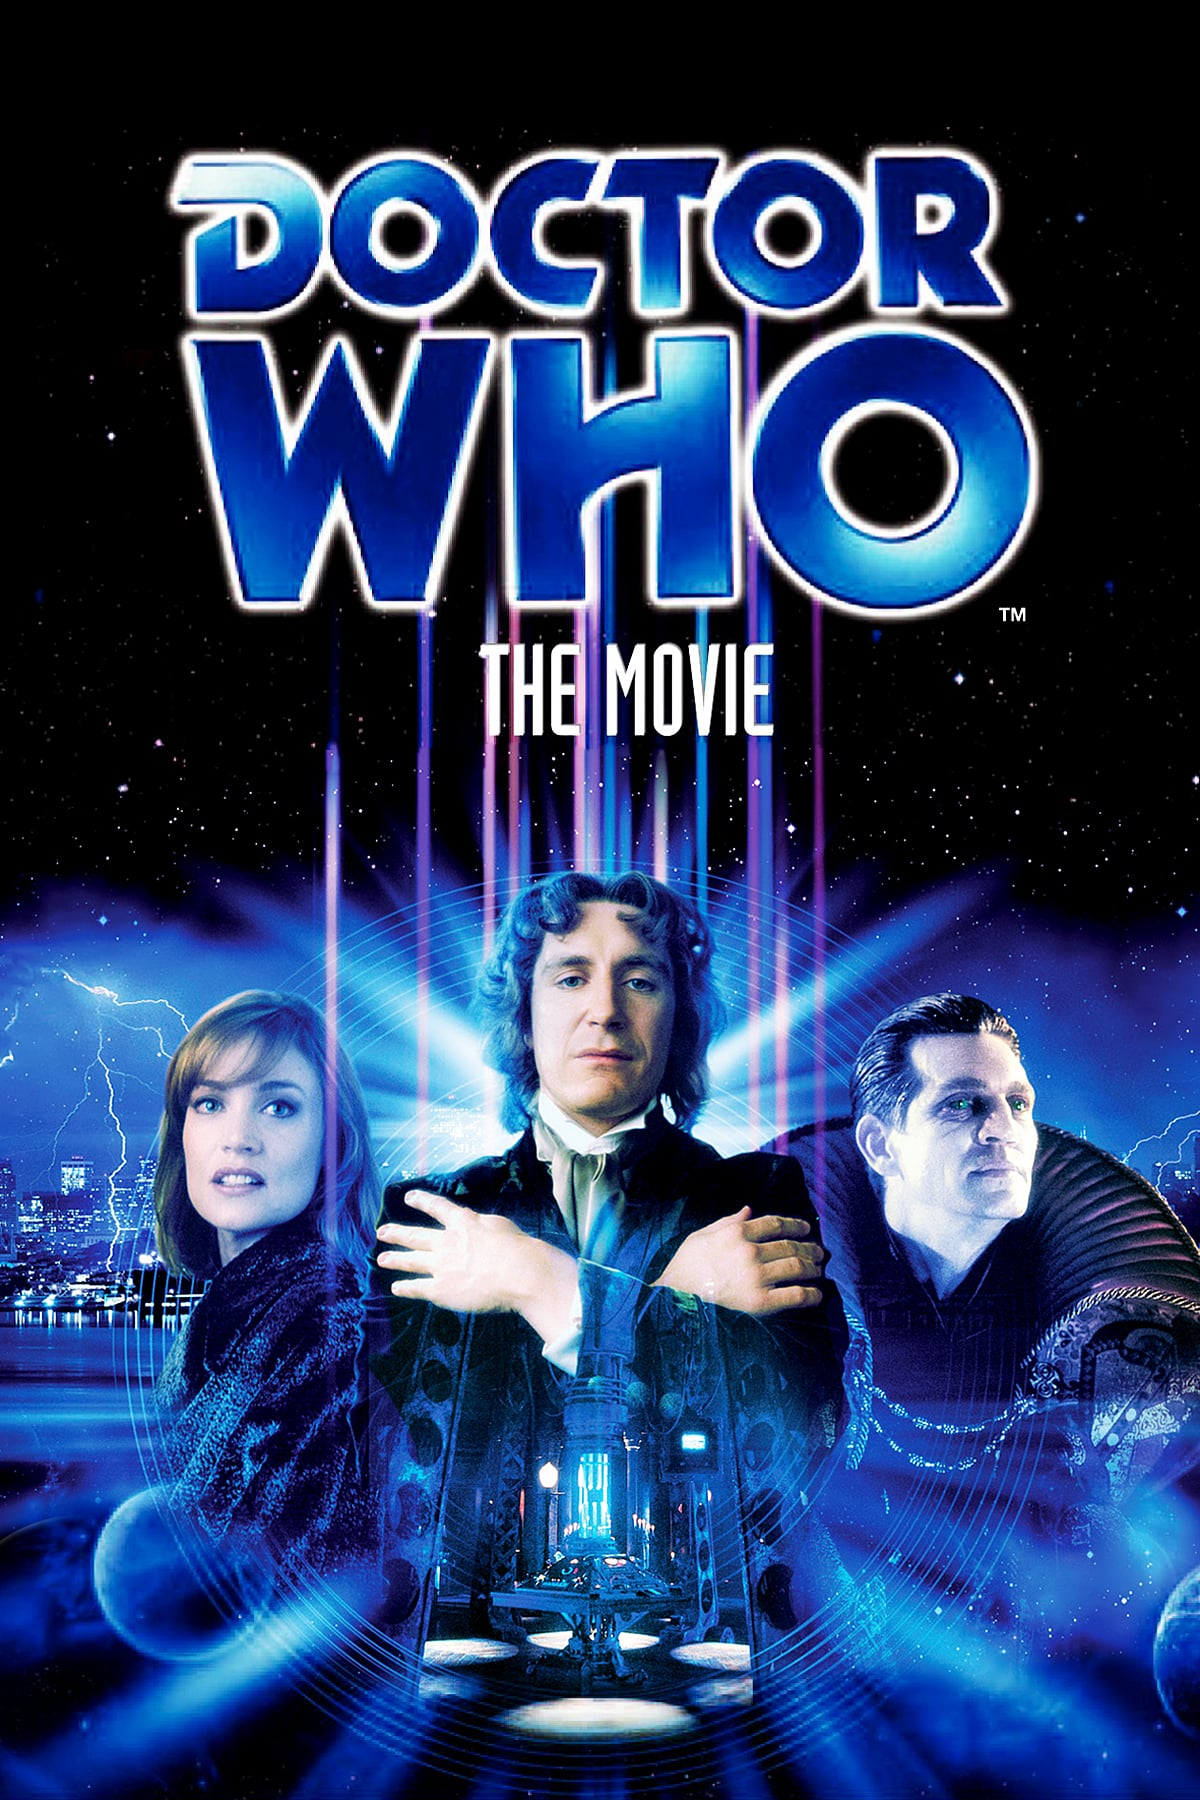 dr who movie 1996